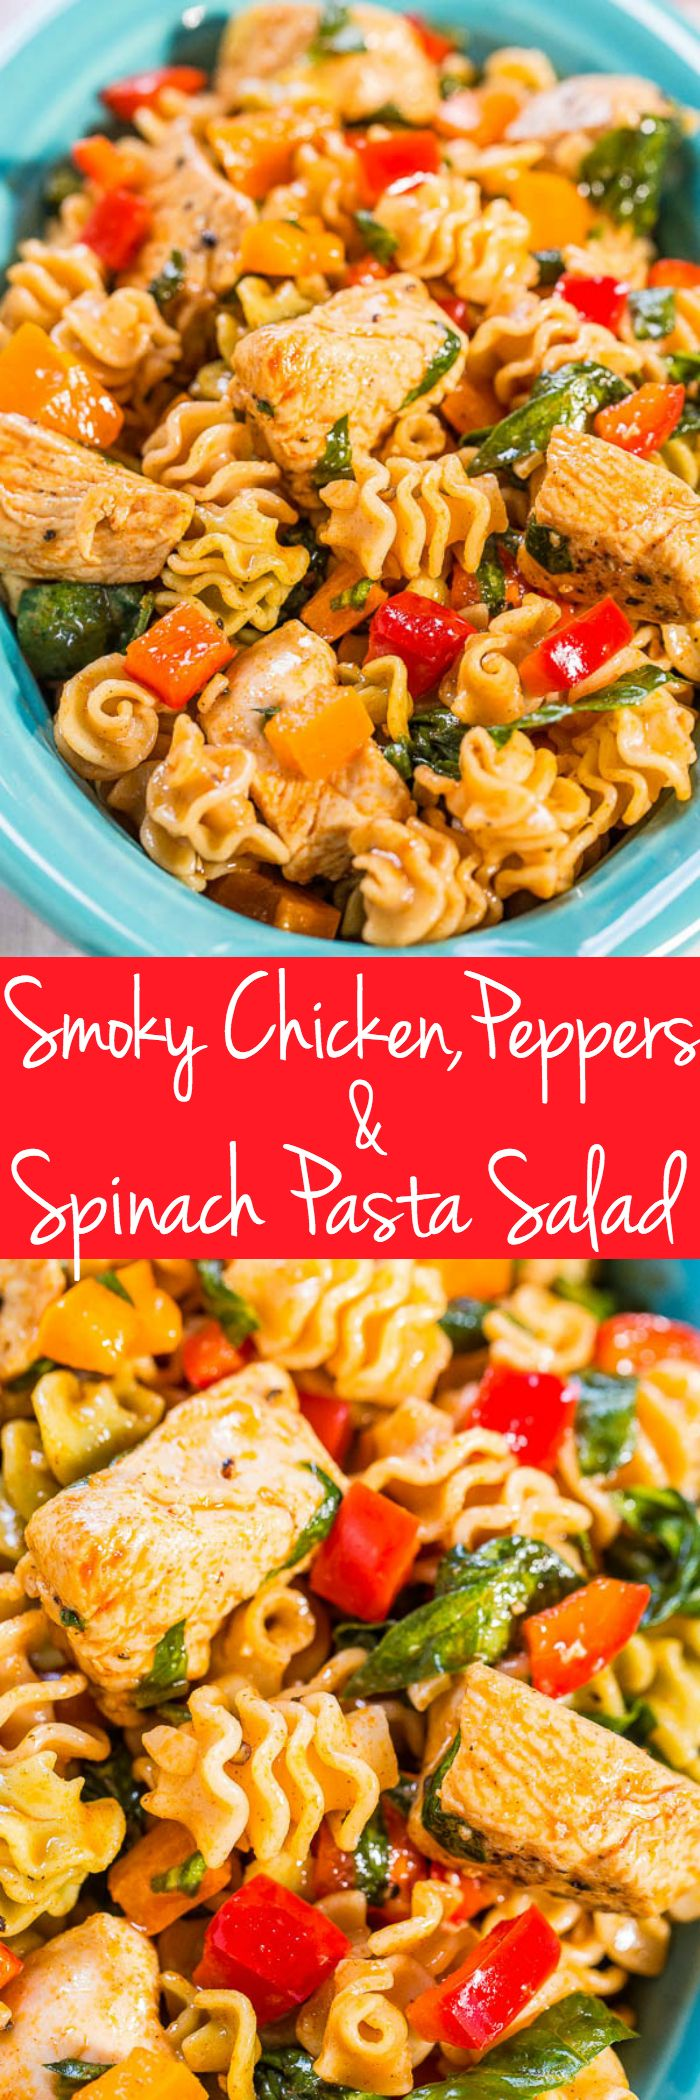 Smoky Chicken, Peppers, and Spinach Pasta Salad - Juicy chicken, crisp bell peppers and pasta with smoked paprika! Fast, easy, healthy and a hit with everyone!! Great for picnics, potlucks, or easy weeknight dinners!